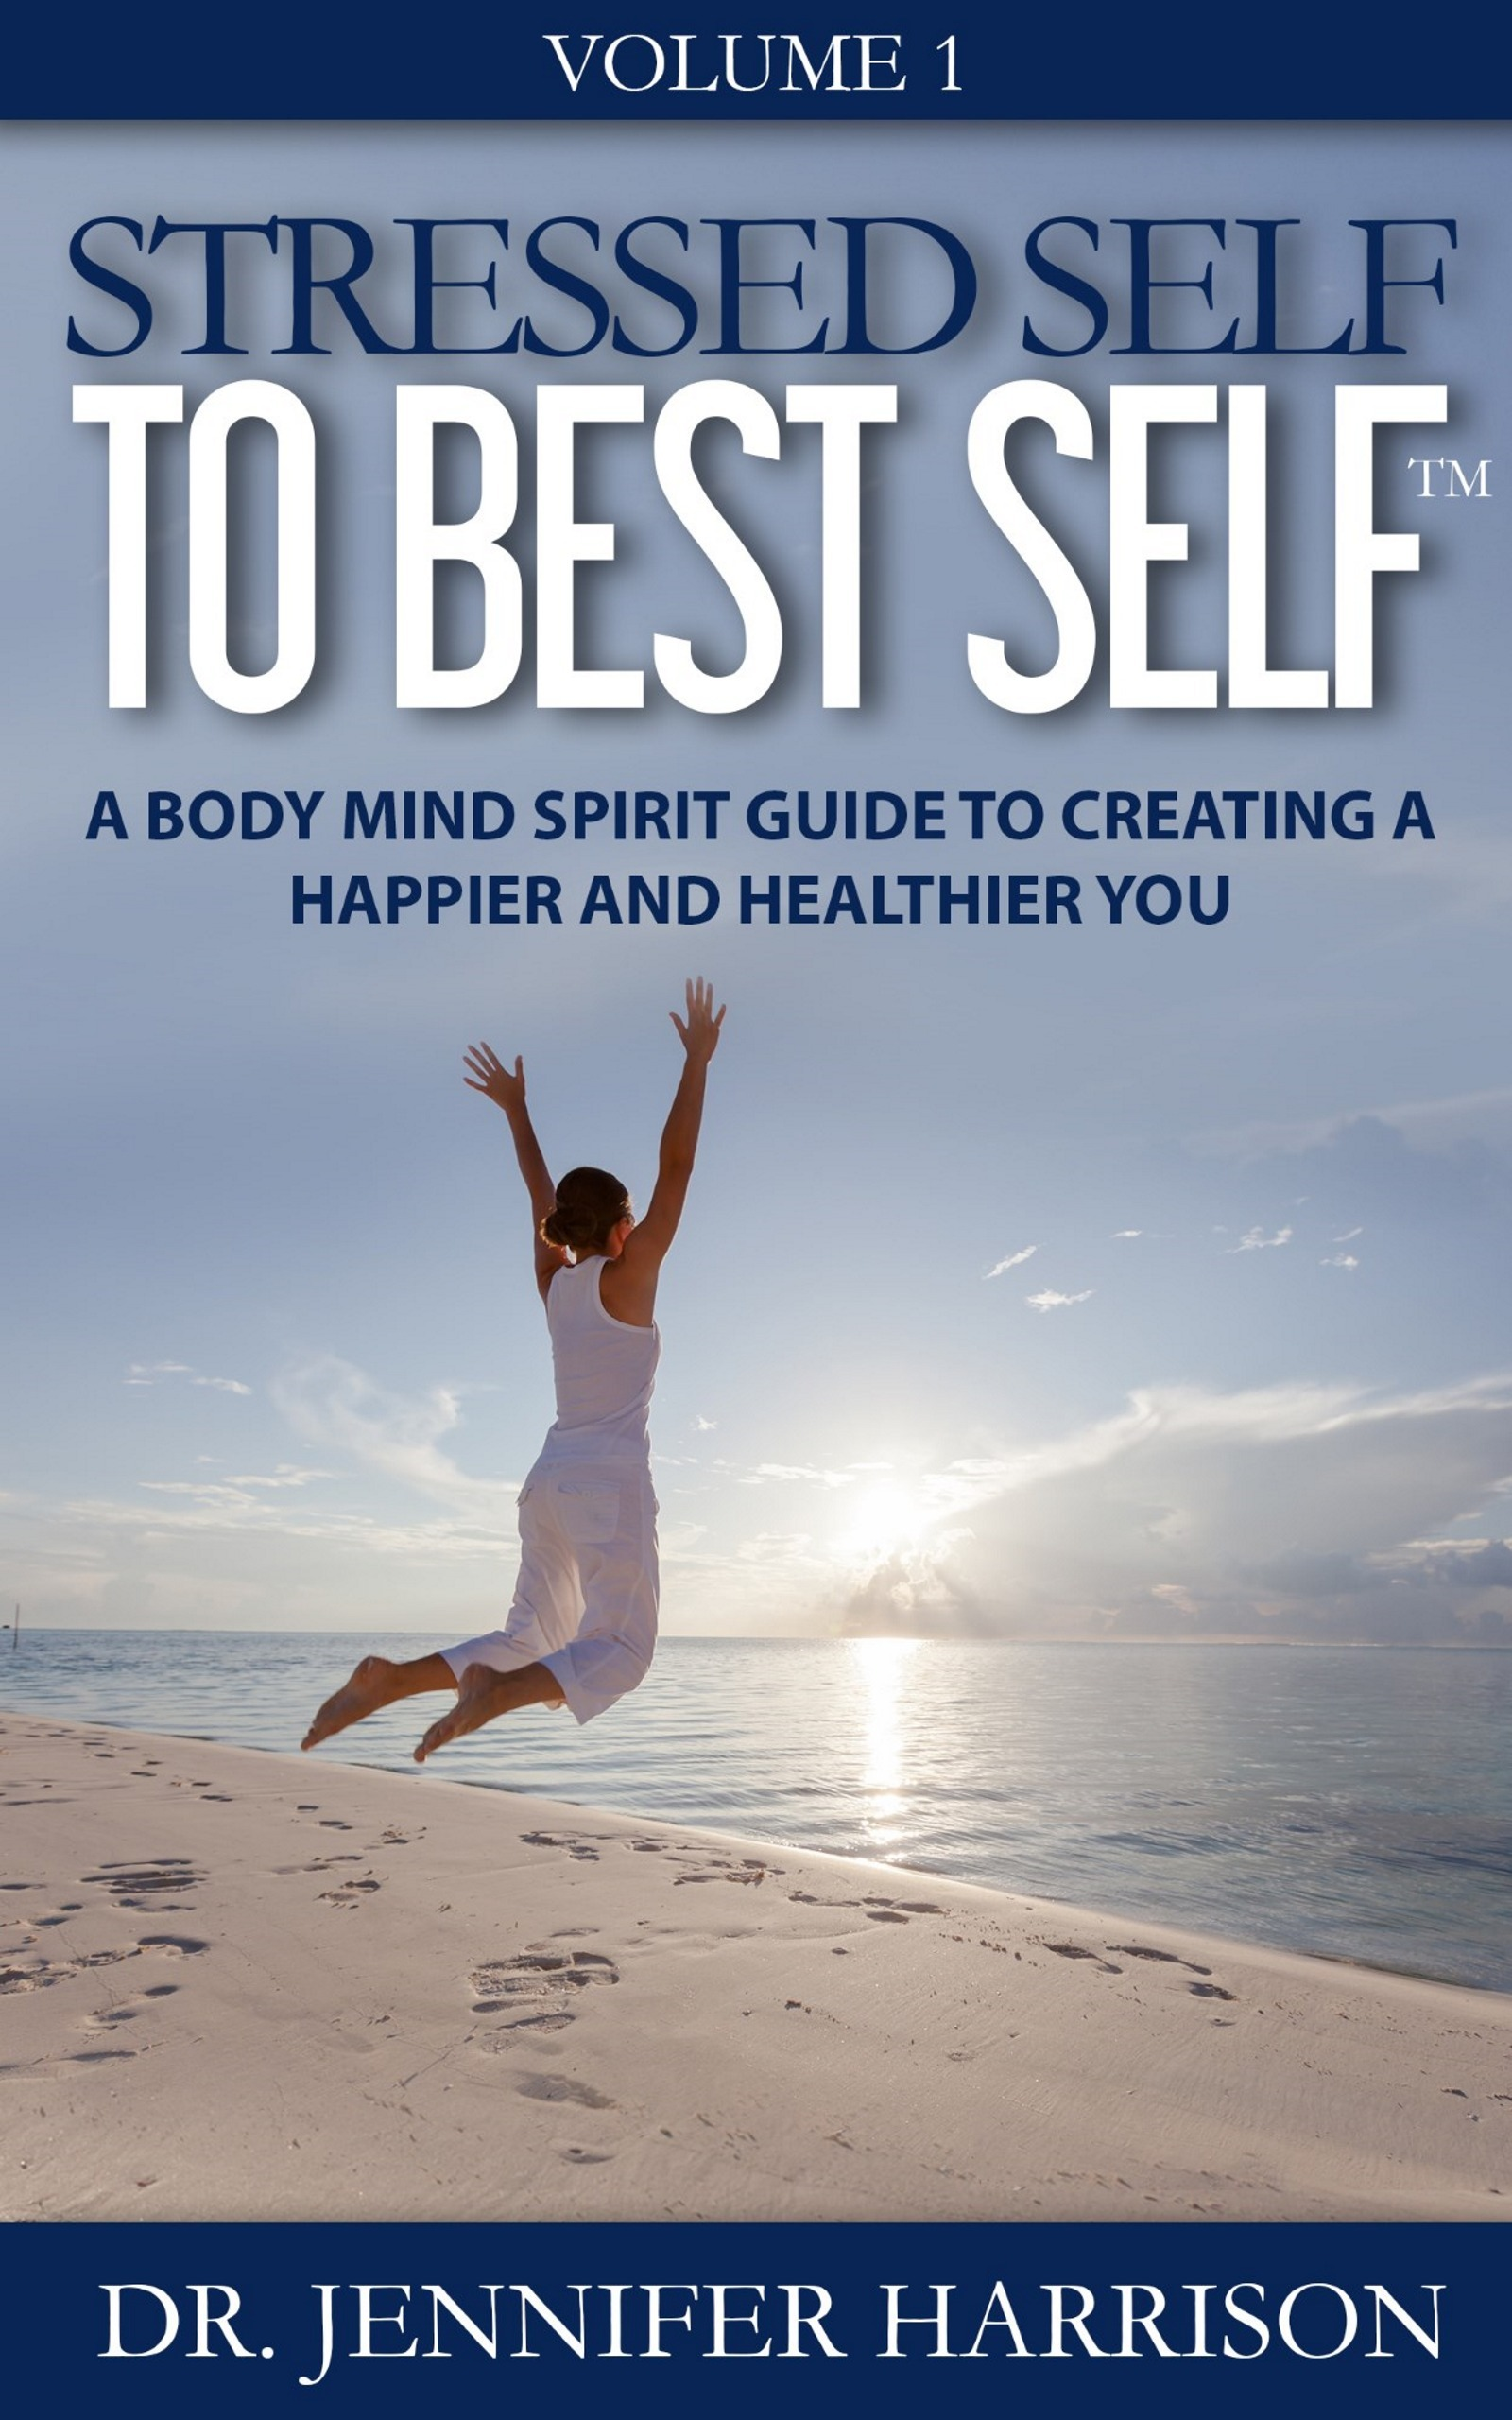 Stressed Self to Best Self™: A Body Mind Spirit Guide to Creating a Happier and Healthier You Volume 1  by  Dr. Jennifer Harrison